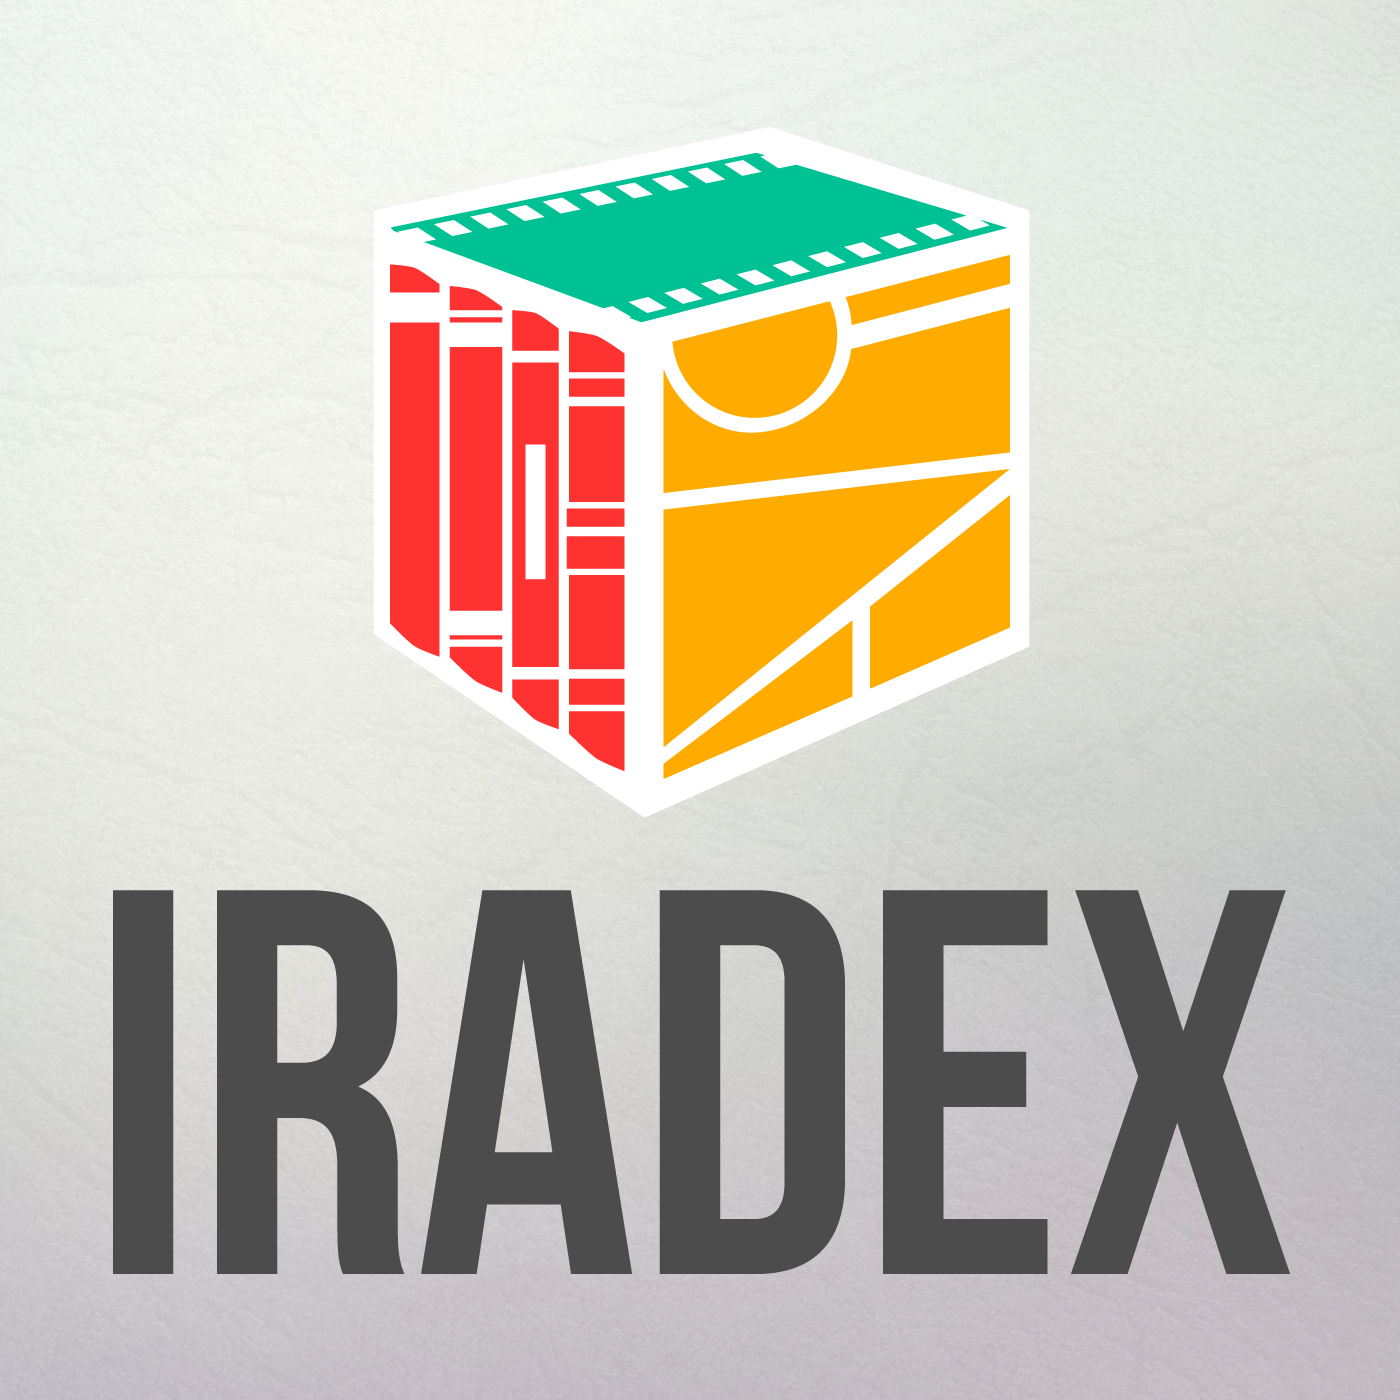 IradexIradex